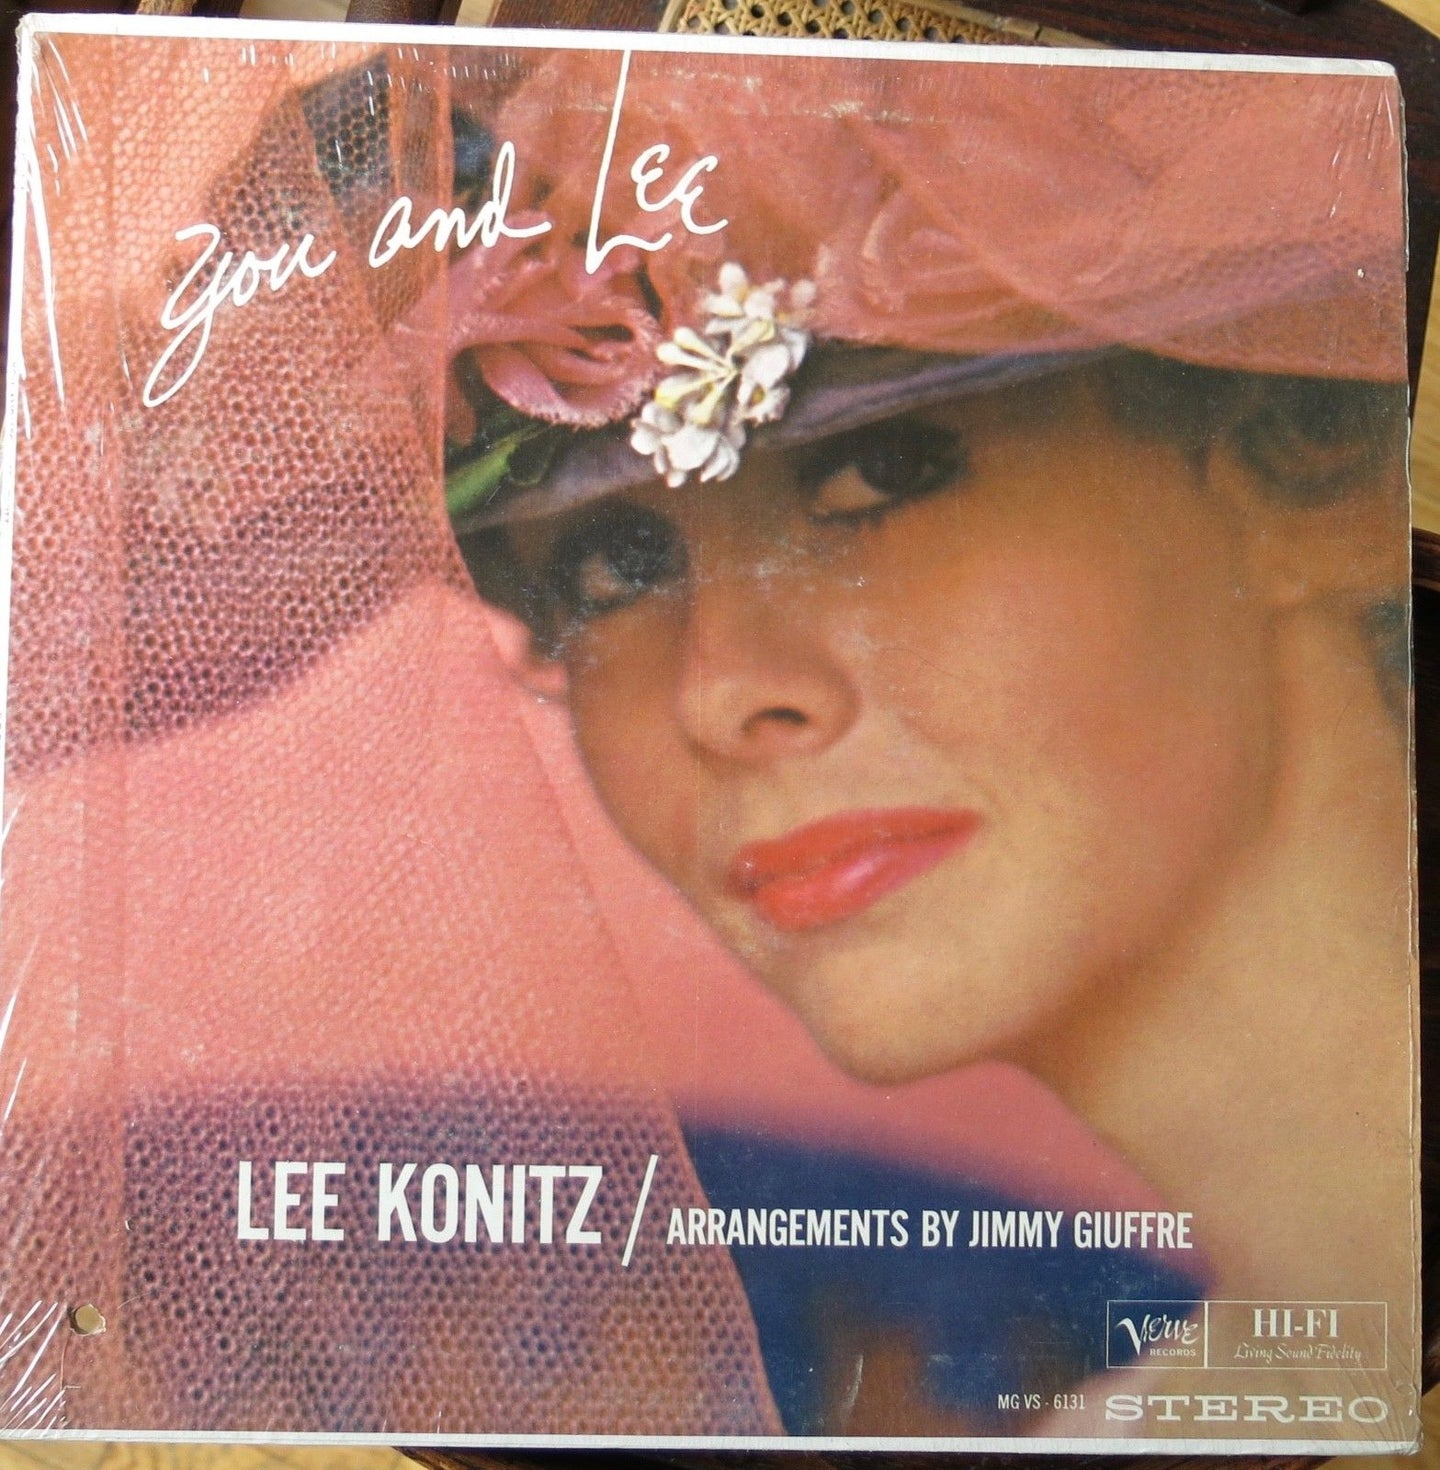 Lee Konitz - You and Lee - Verve